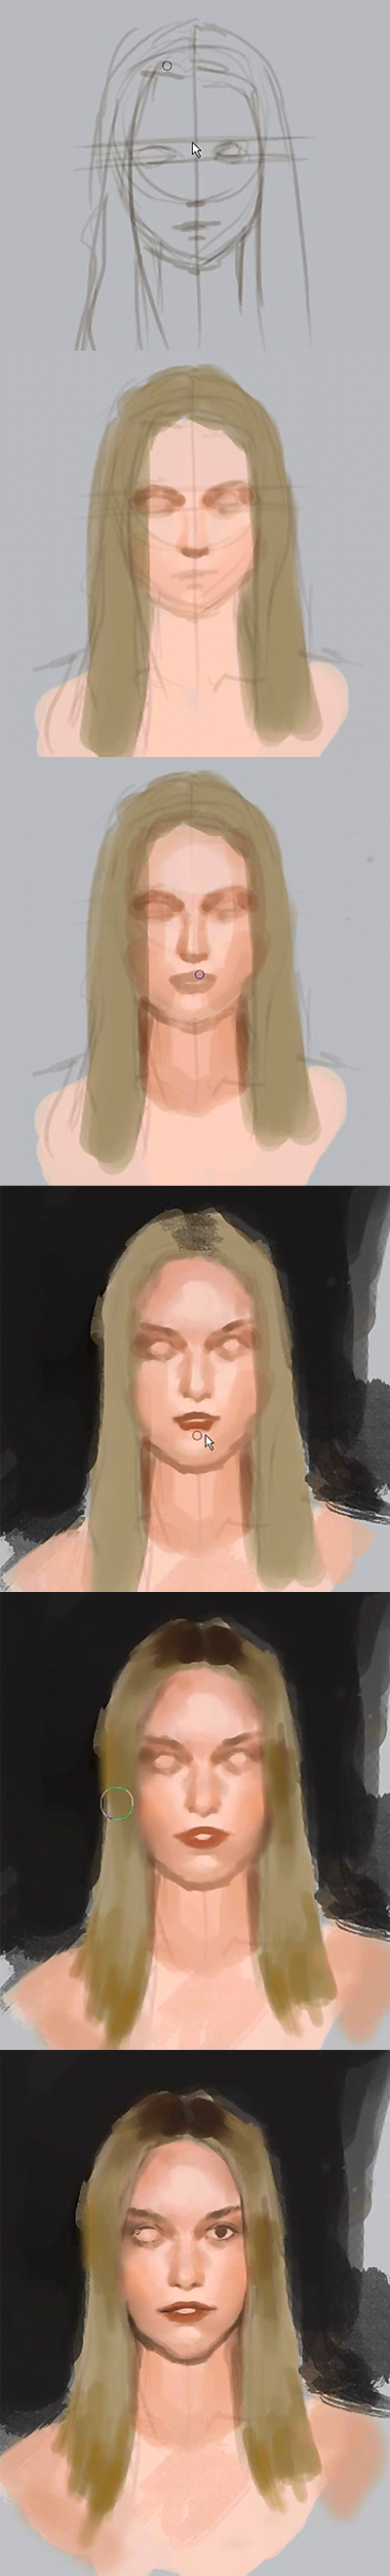 painting woman portrait step by step